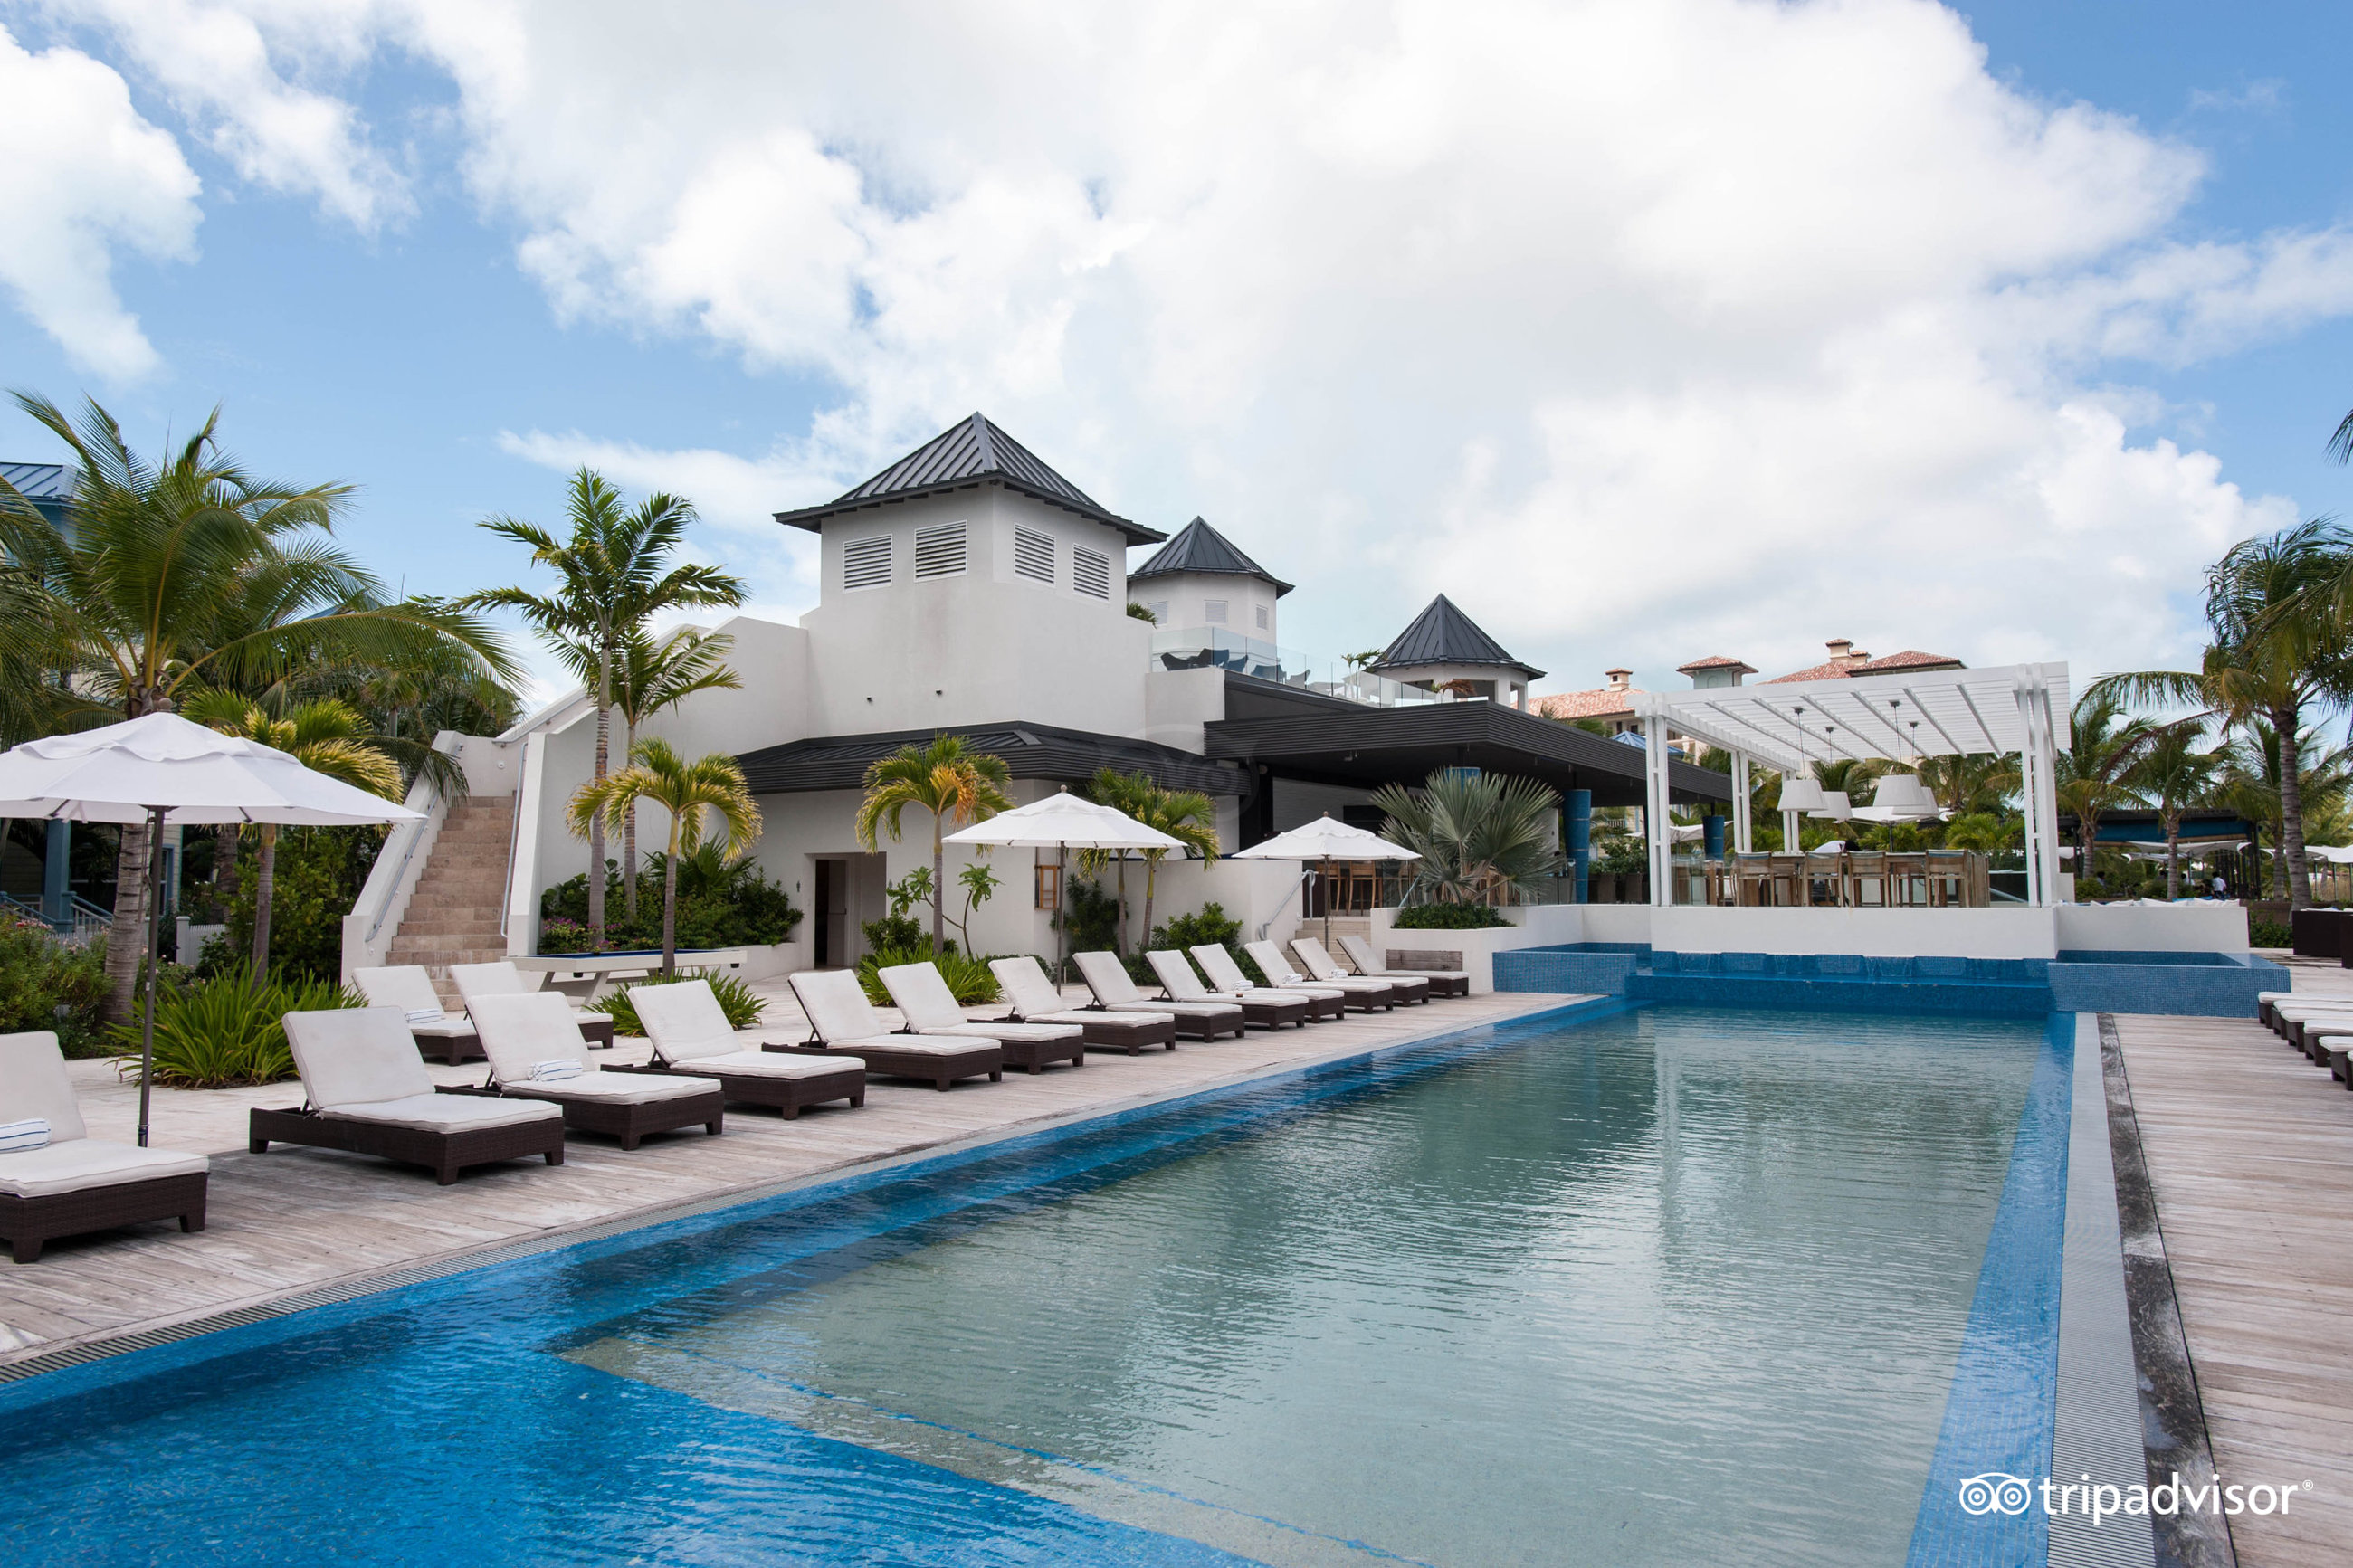 beaches turks & caicos (providenciales) 2017 hotel review - family